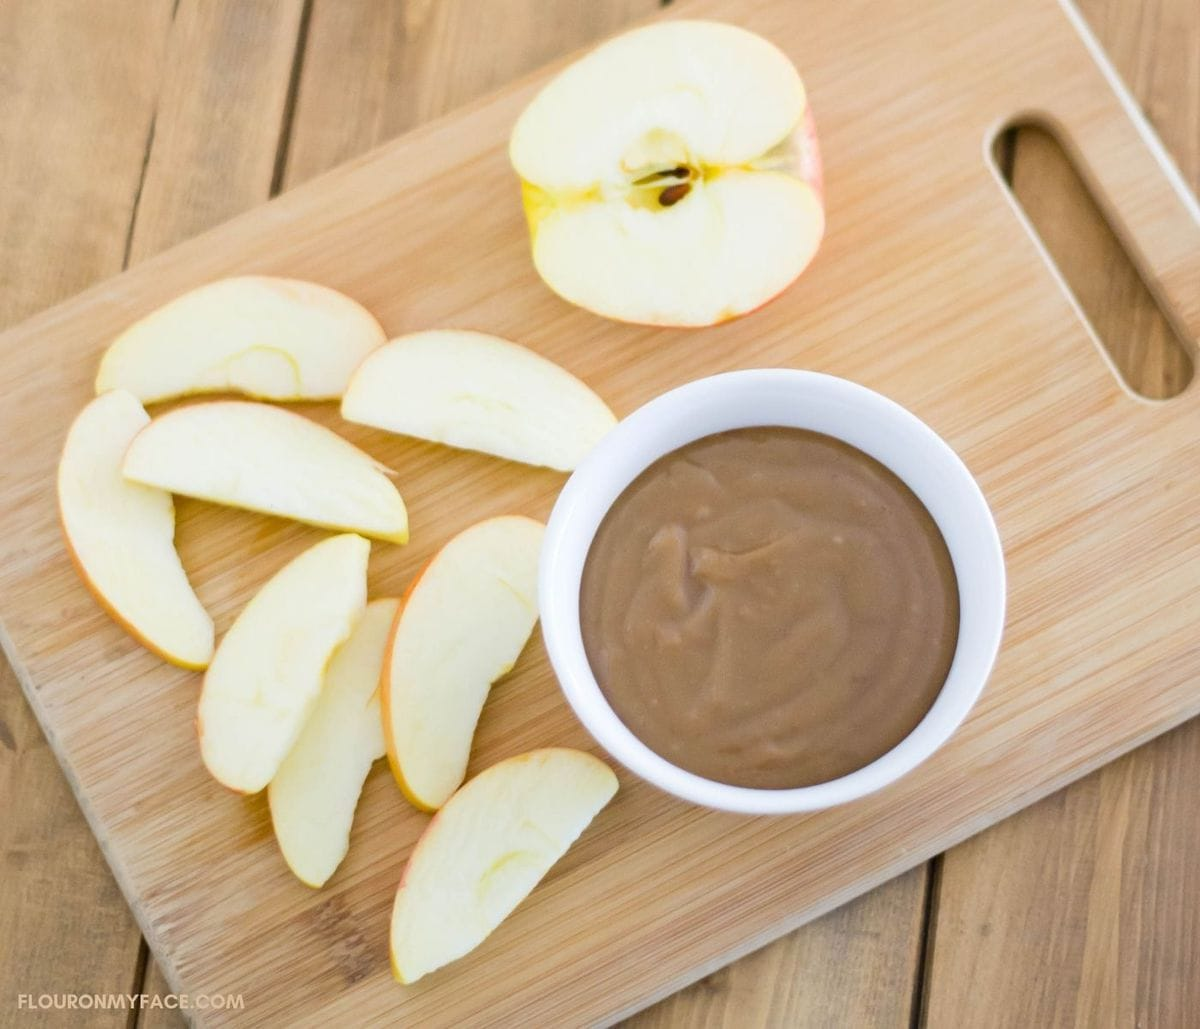 A sliced apple on a cutting board next to a bowl filled with caramel dip.